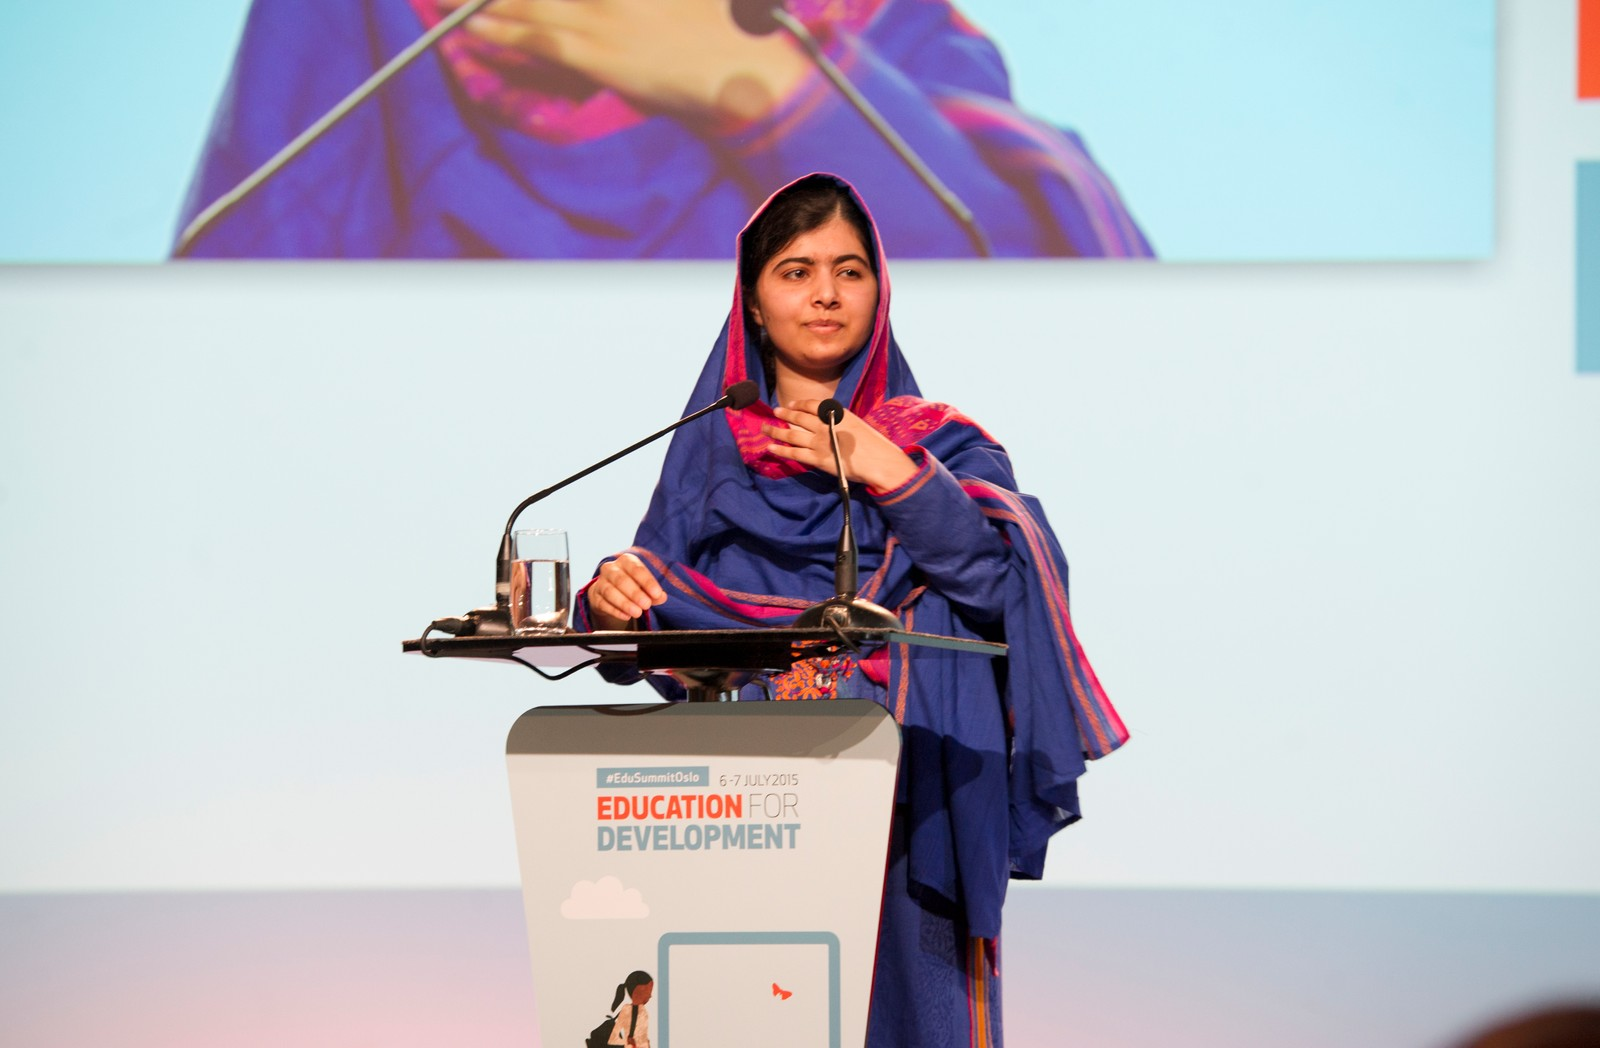 Malala vil at 12 års skulegang skal bli obligatorisk for alle barn.